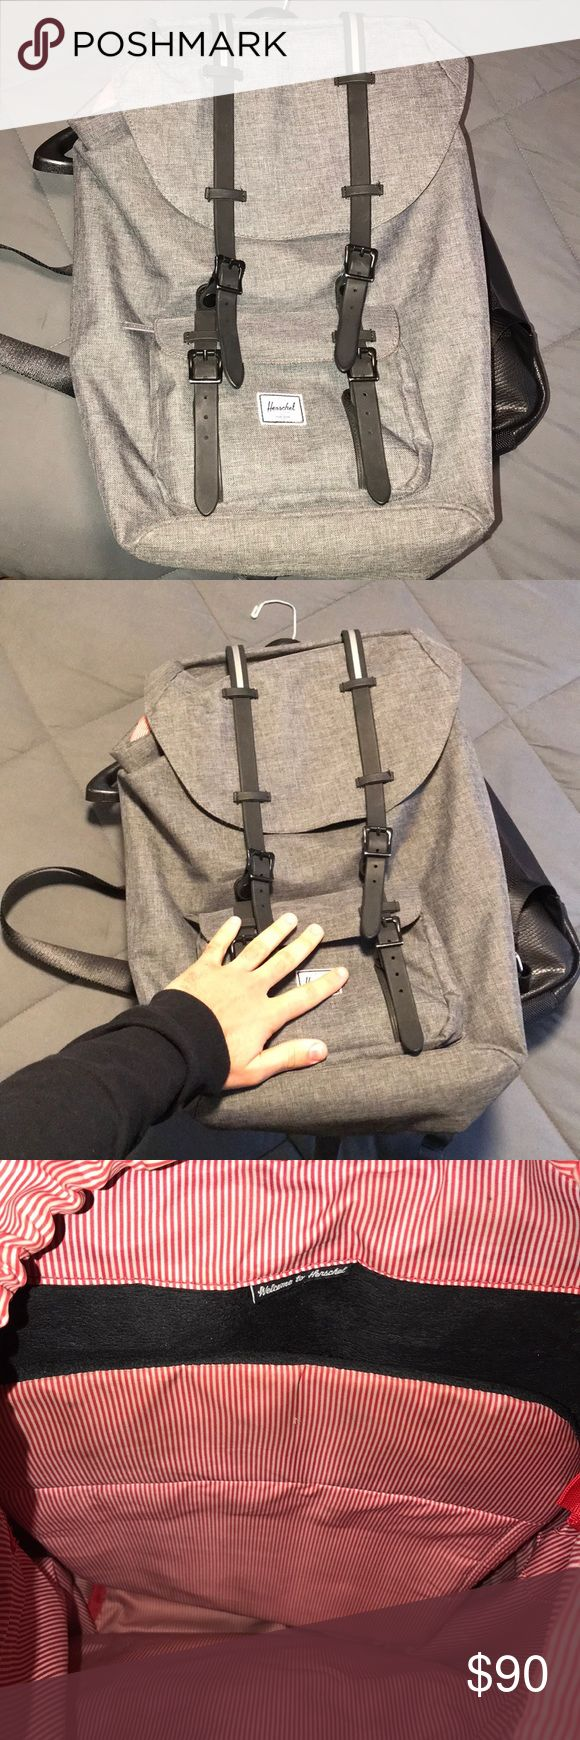 Herschel Backpack Herschel Gray Backpack, only problem is that one of the mini clasps does not hold together, but other side does so a minor defect. Herschel Supply Company Bags Backpacks